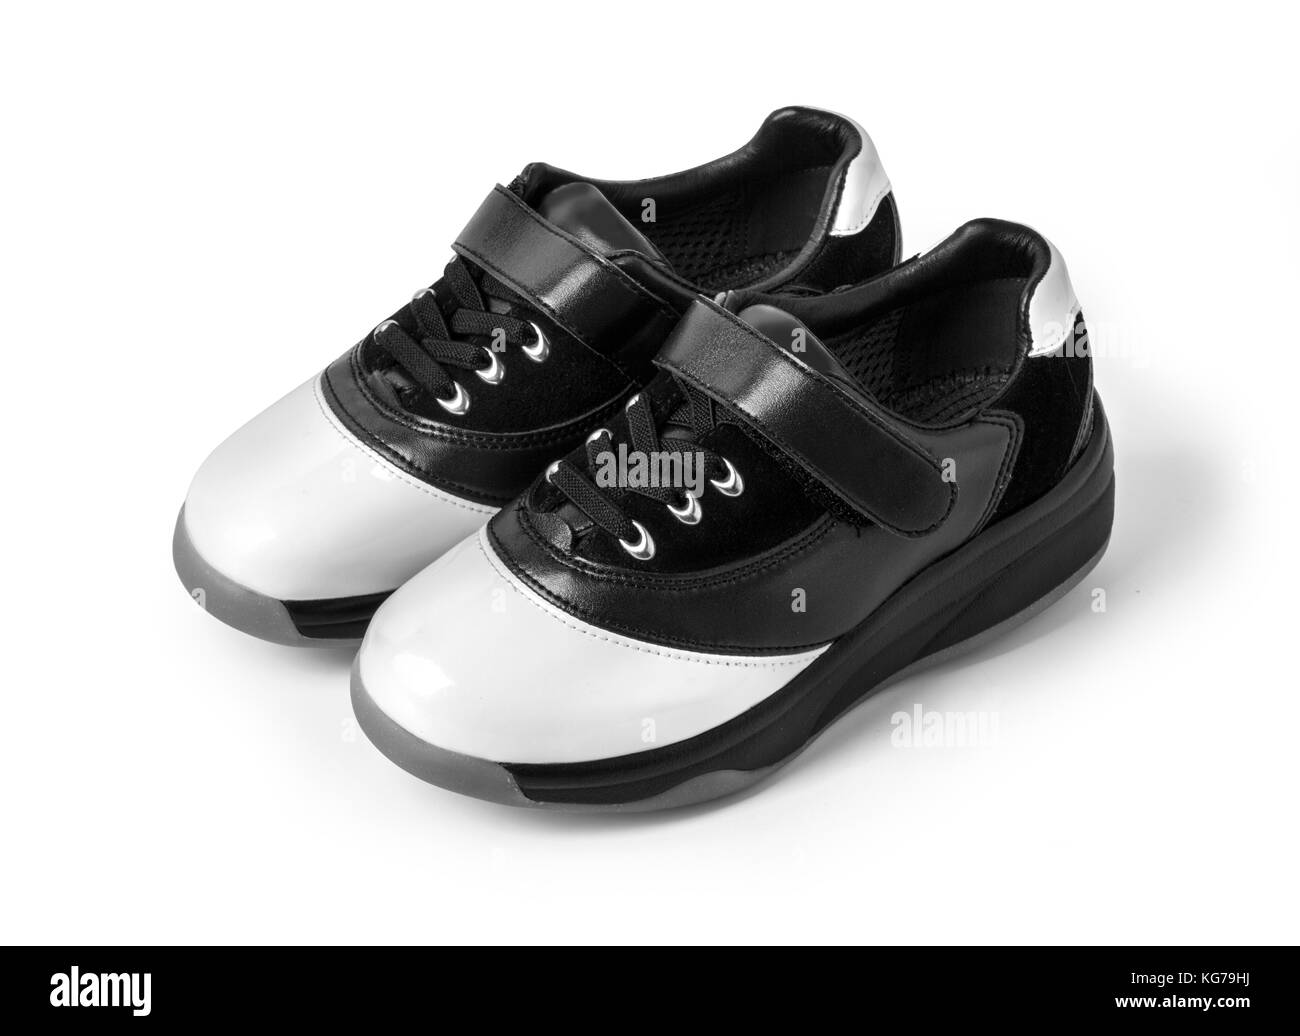 Two-tone black and white  leather  shoes on white with clipping path - Stock Image